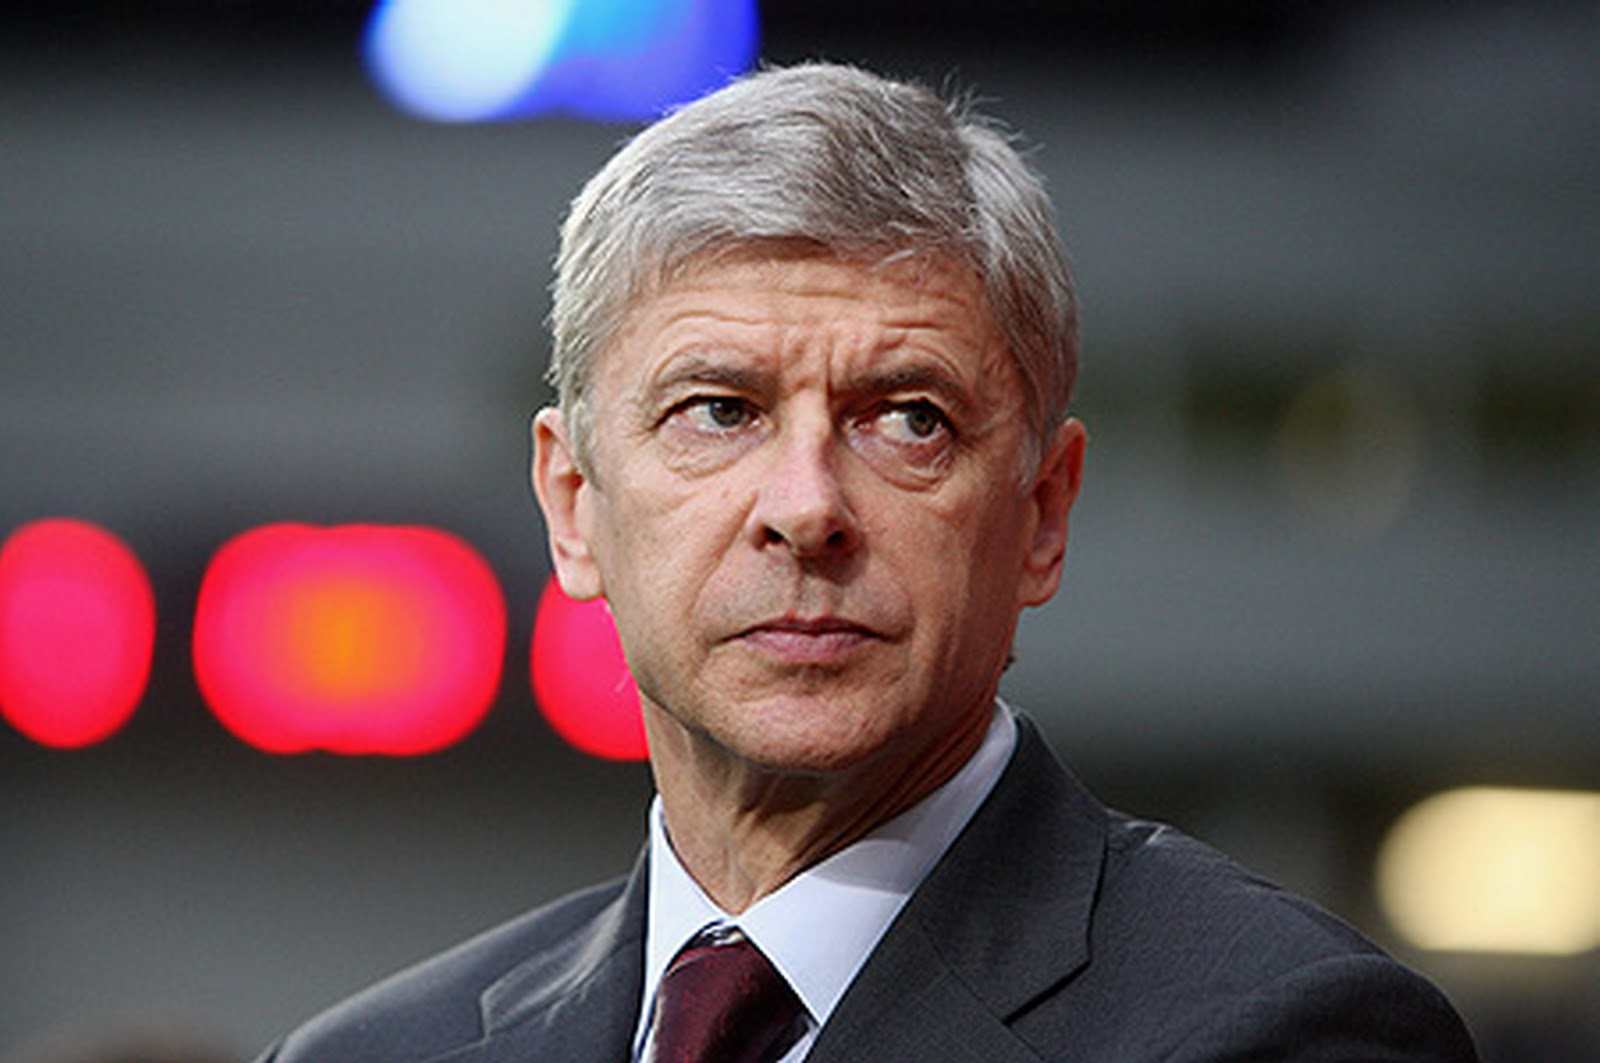 Some Arsenal fans have questioned Arsene Wenger's future at the club